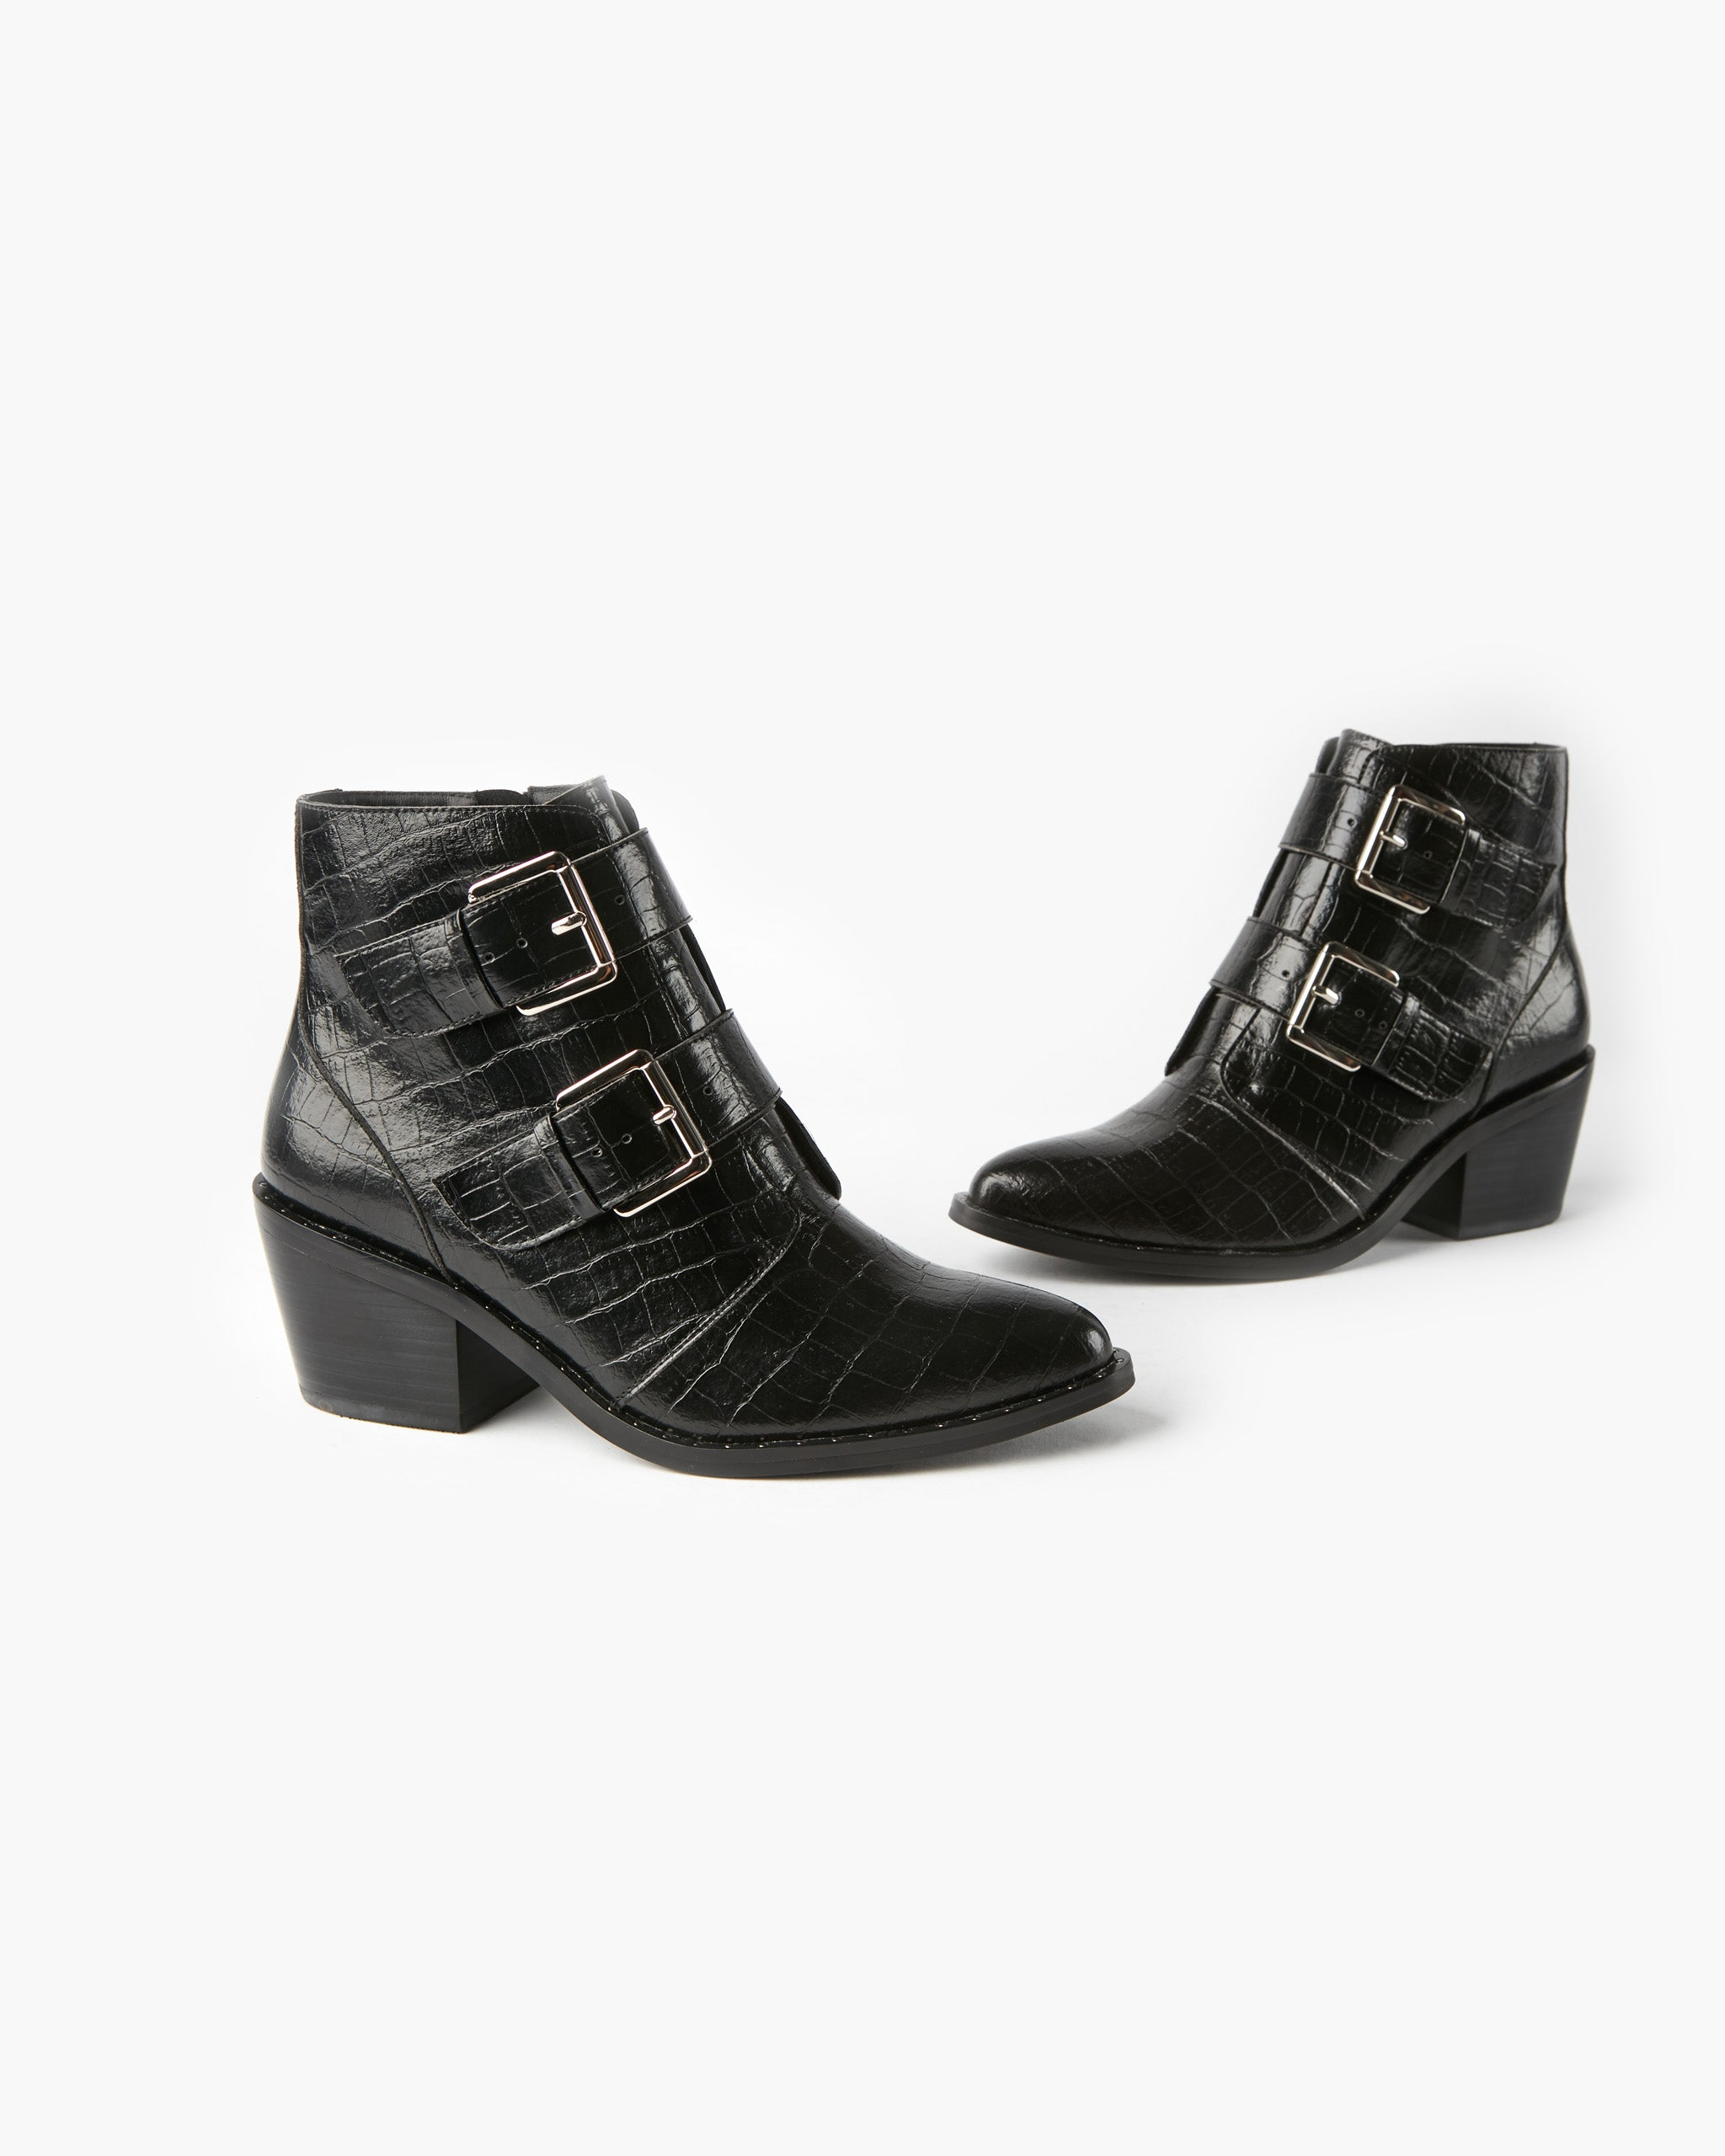 Whisper Ankle Boot - Black Croc